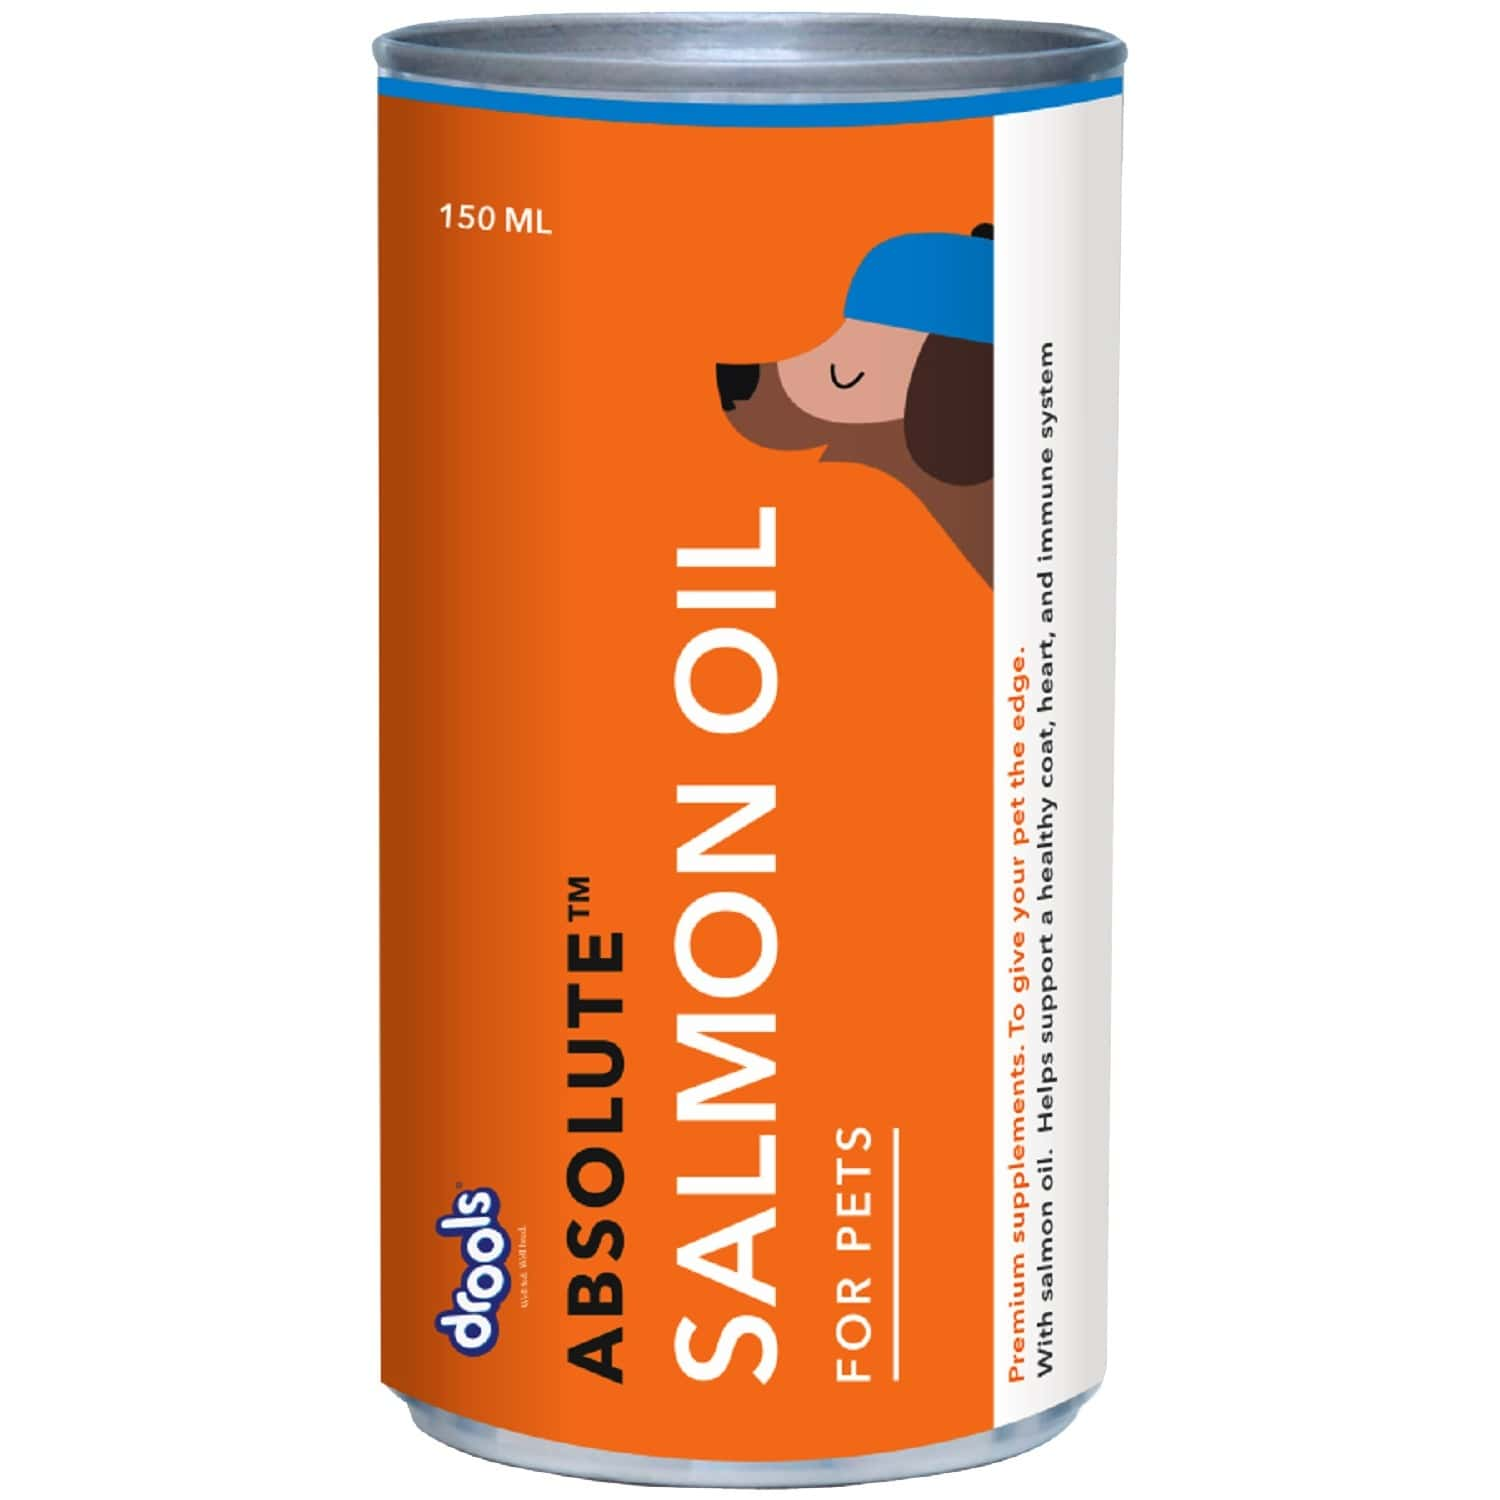 Drools Absolute Salmon Oil Syrup - Dog Supplement 150ml